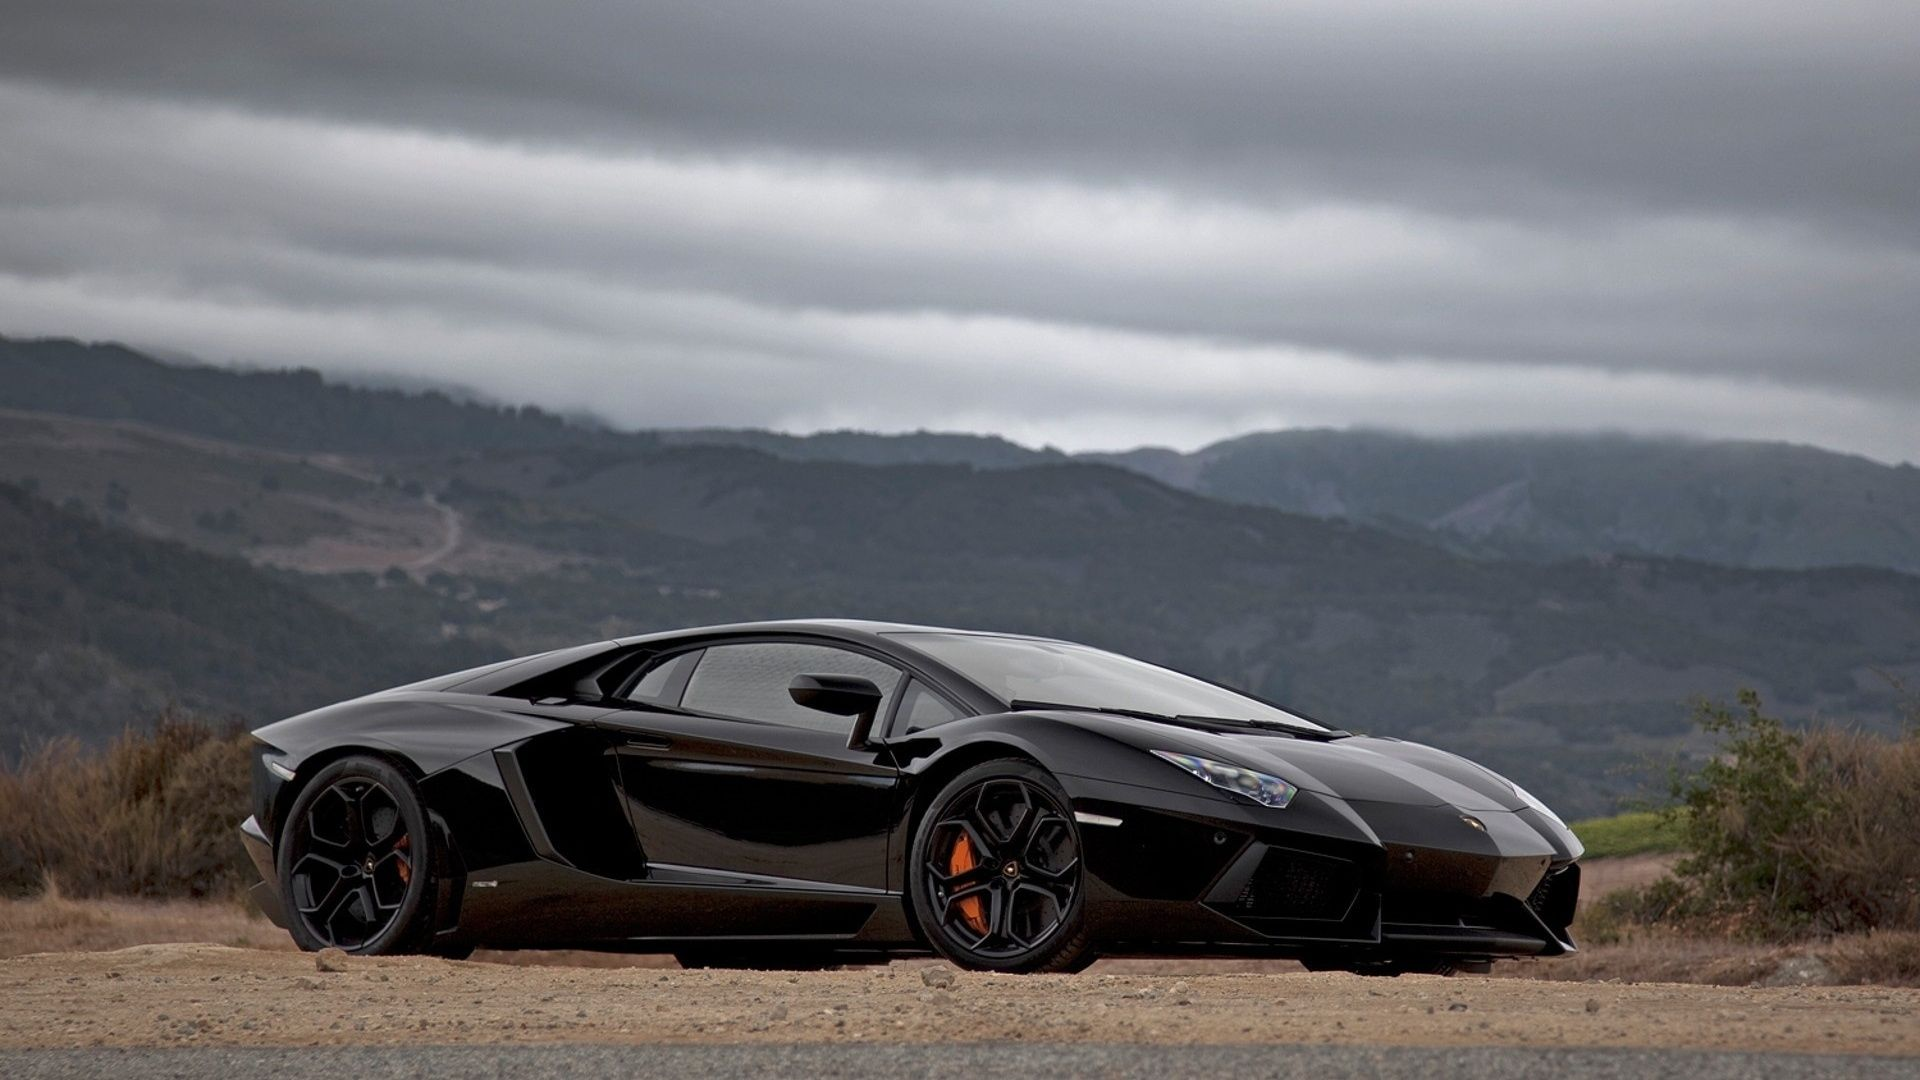 Lamborghini Aventador Black 1080p Hd Wallpaper 1920 1080 Pixel